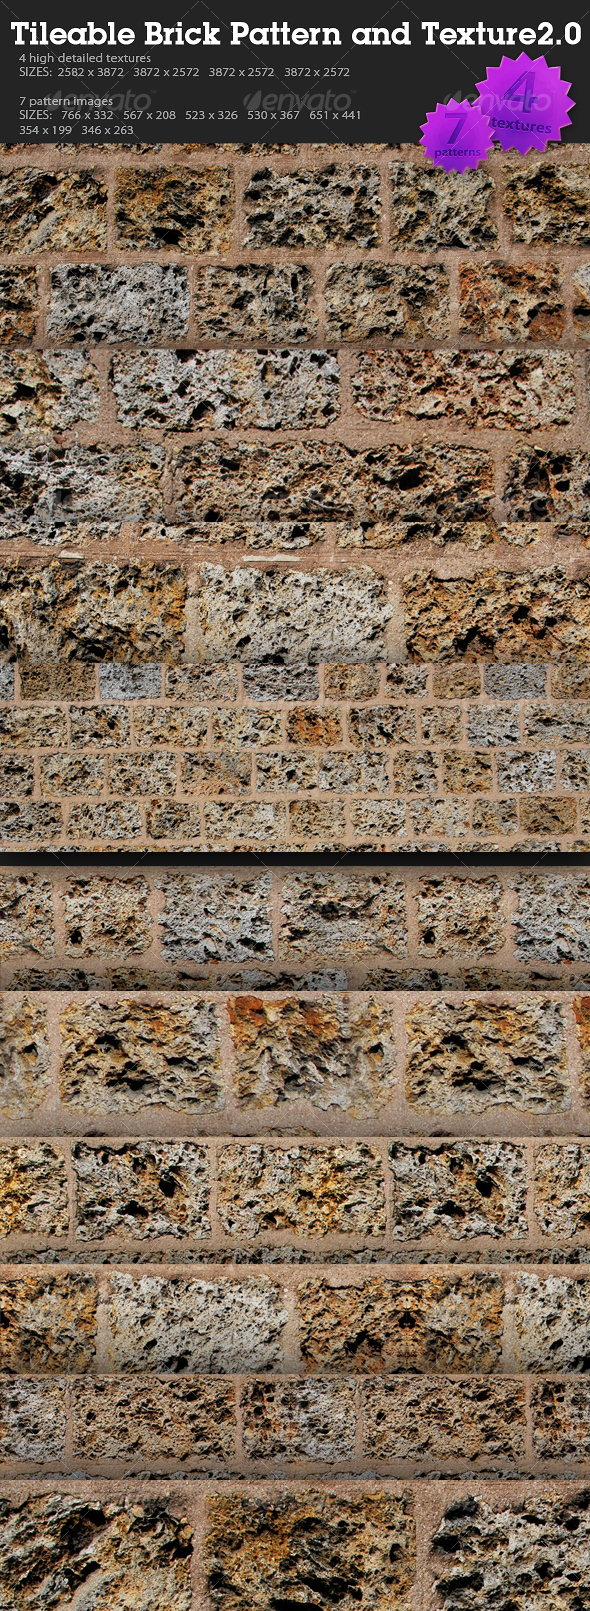 GraphicRiver Tileable Brick Pattern and Texture 2.0 93216